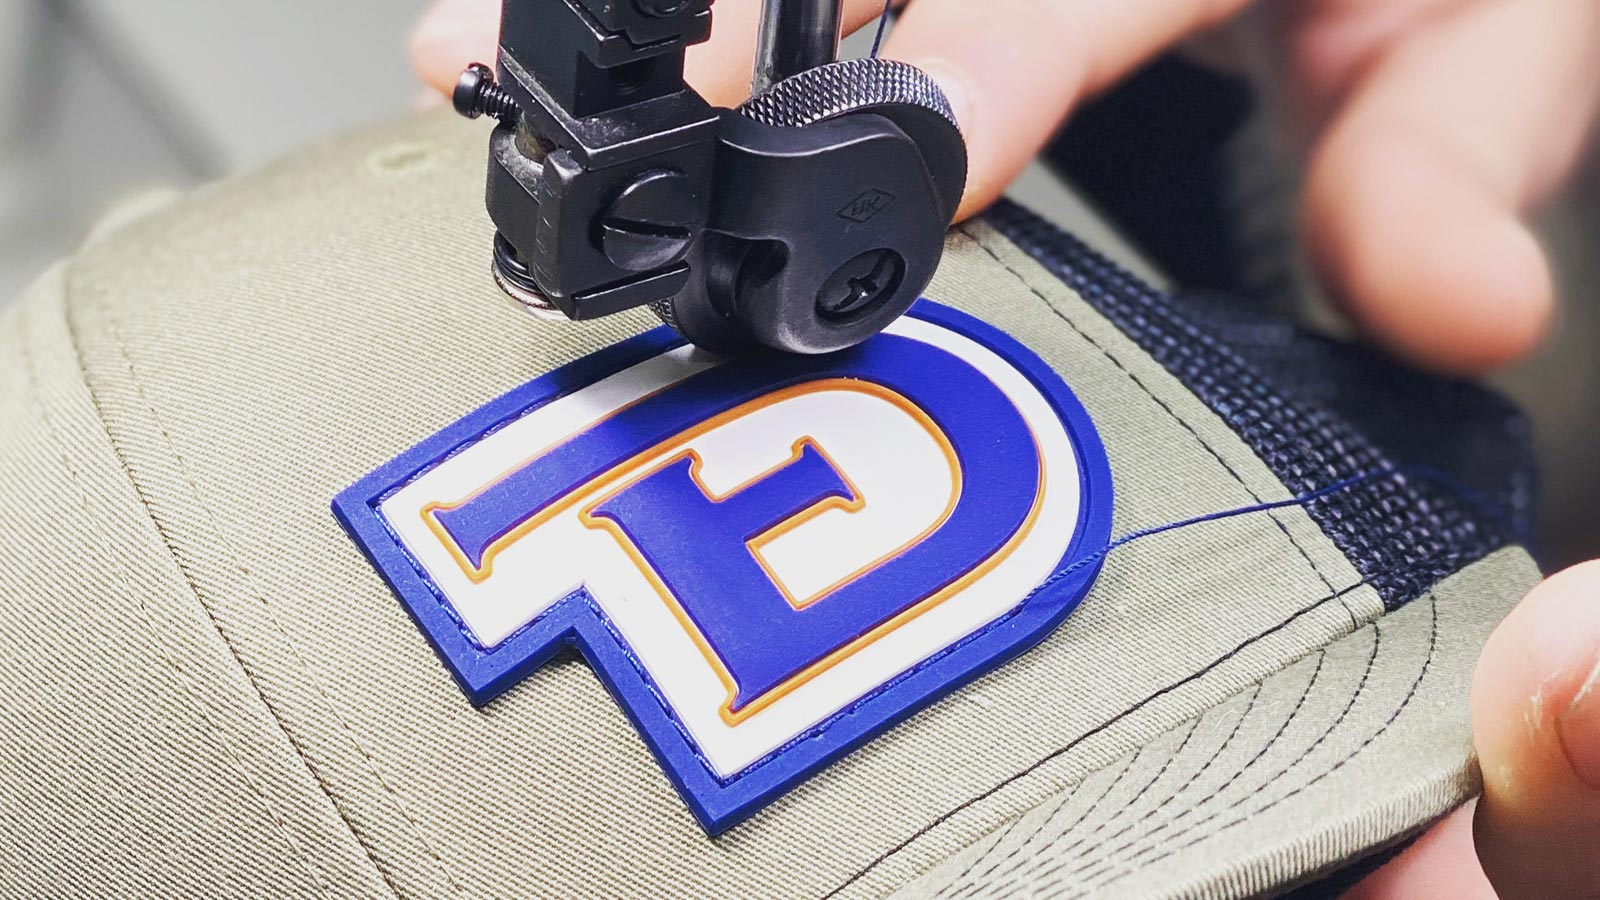 How To Stitch Patches On Hats